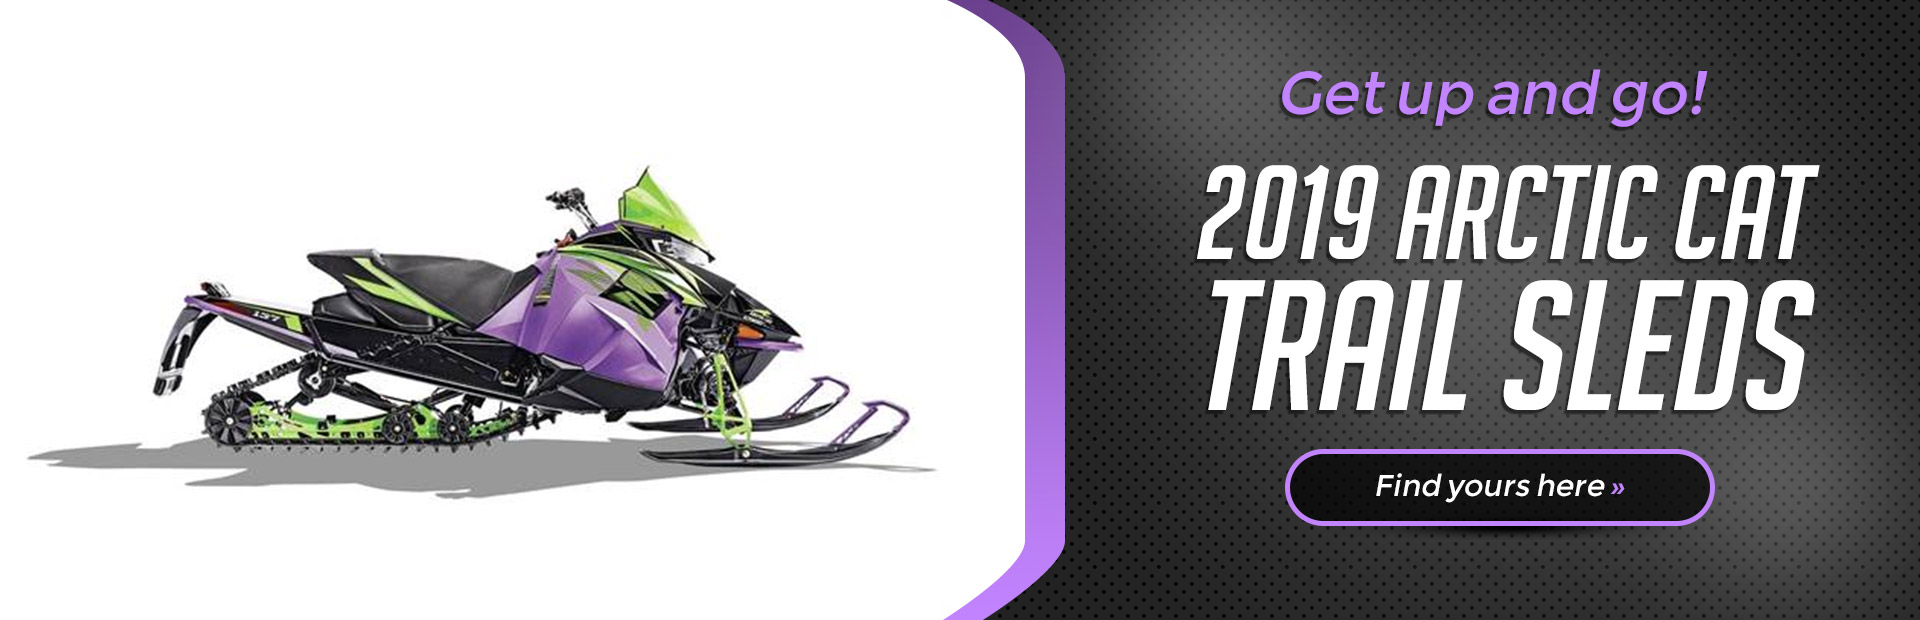 2019 Arctic Cat Trail Sleds: Click here to view the models.